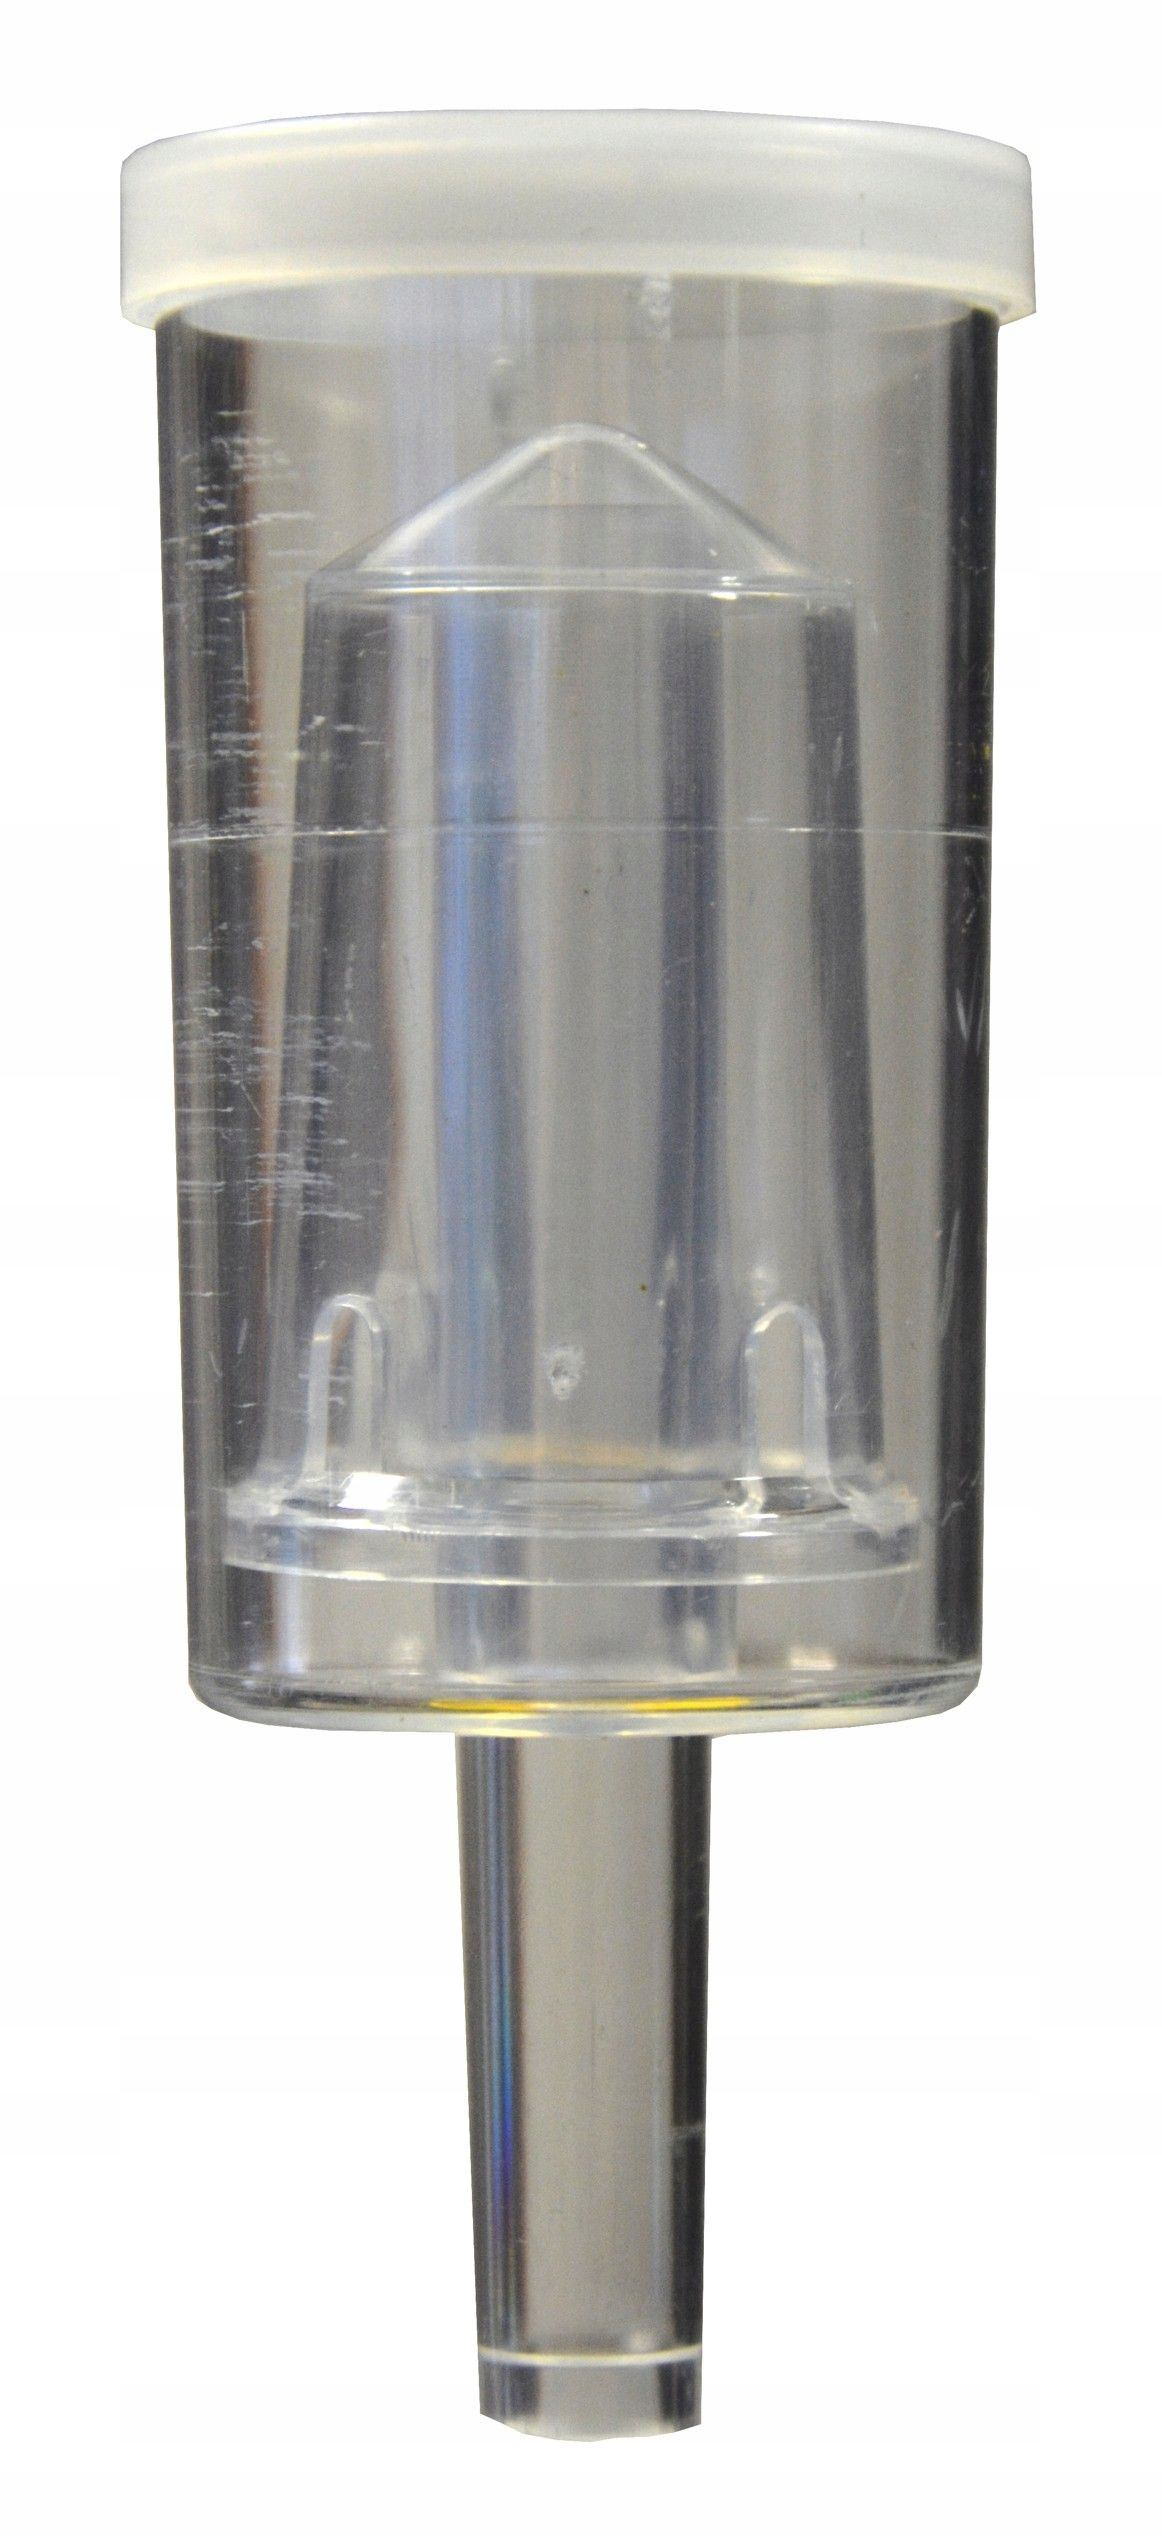 Item FERMENTACYJNA quiet PIPE BELL is very durable